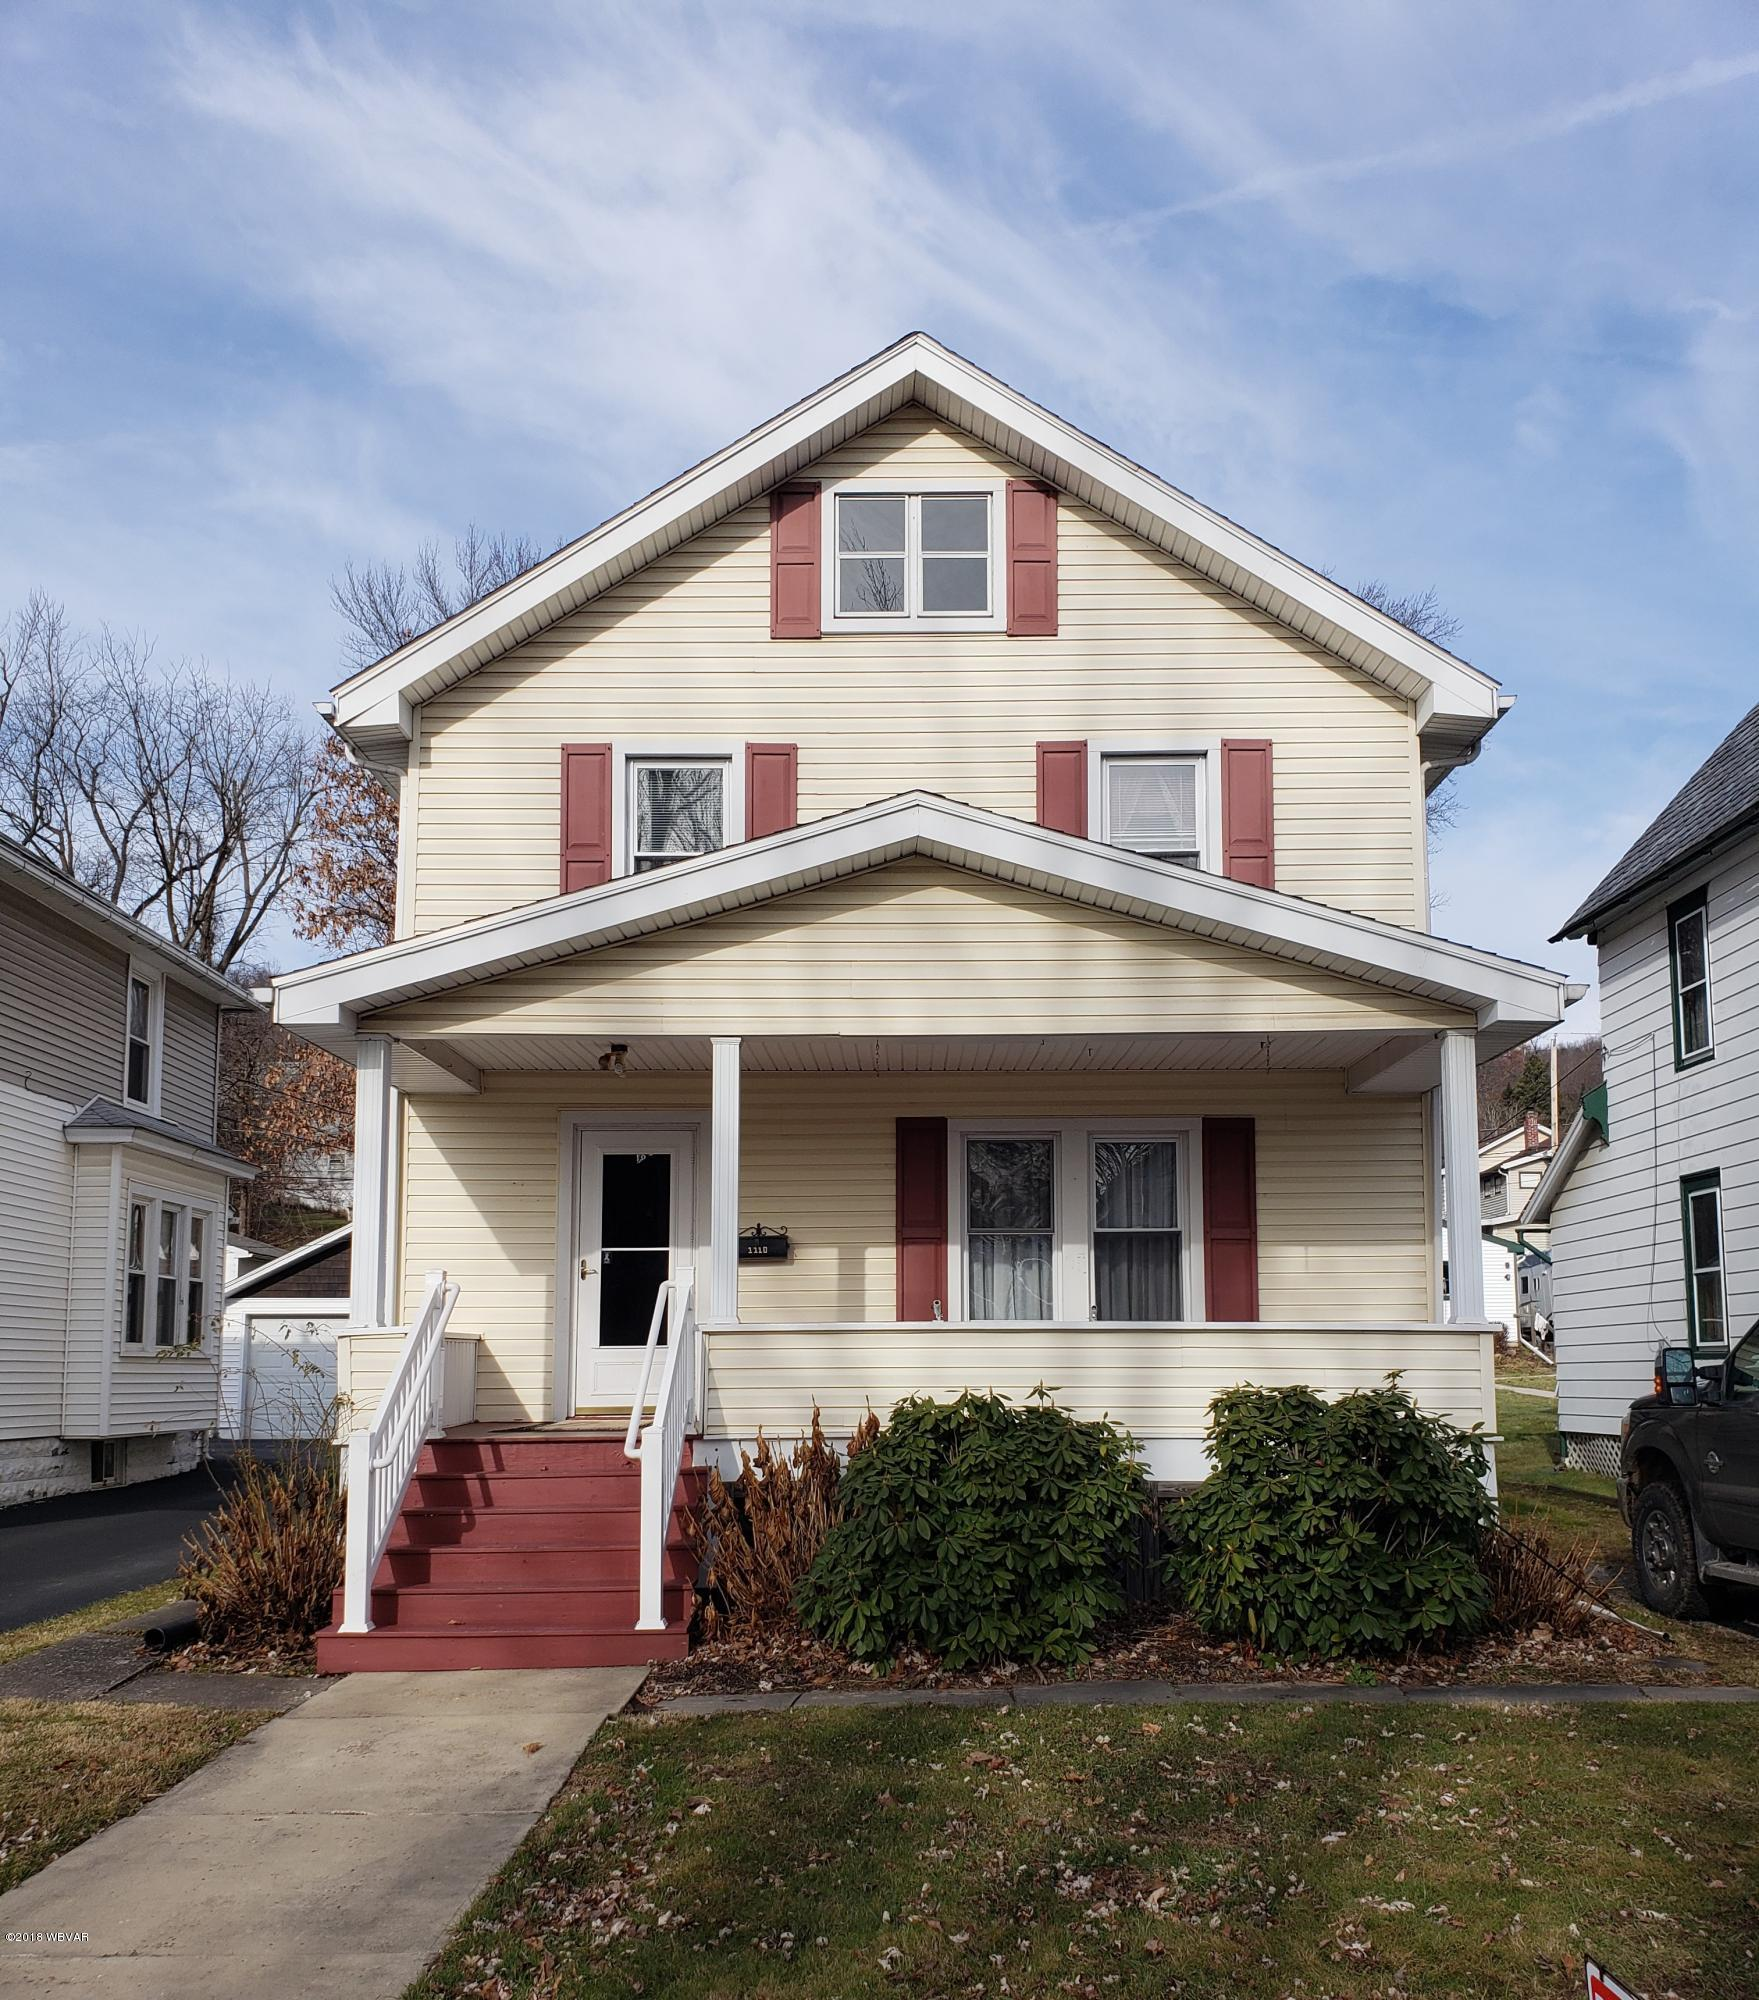 1110 HIGH STREET,Williamsport,PA 17701,3 Bedrooms Bedrooms,1.5 BathroomsBathrooms,Residential,HIGH,WB-86106